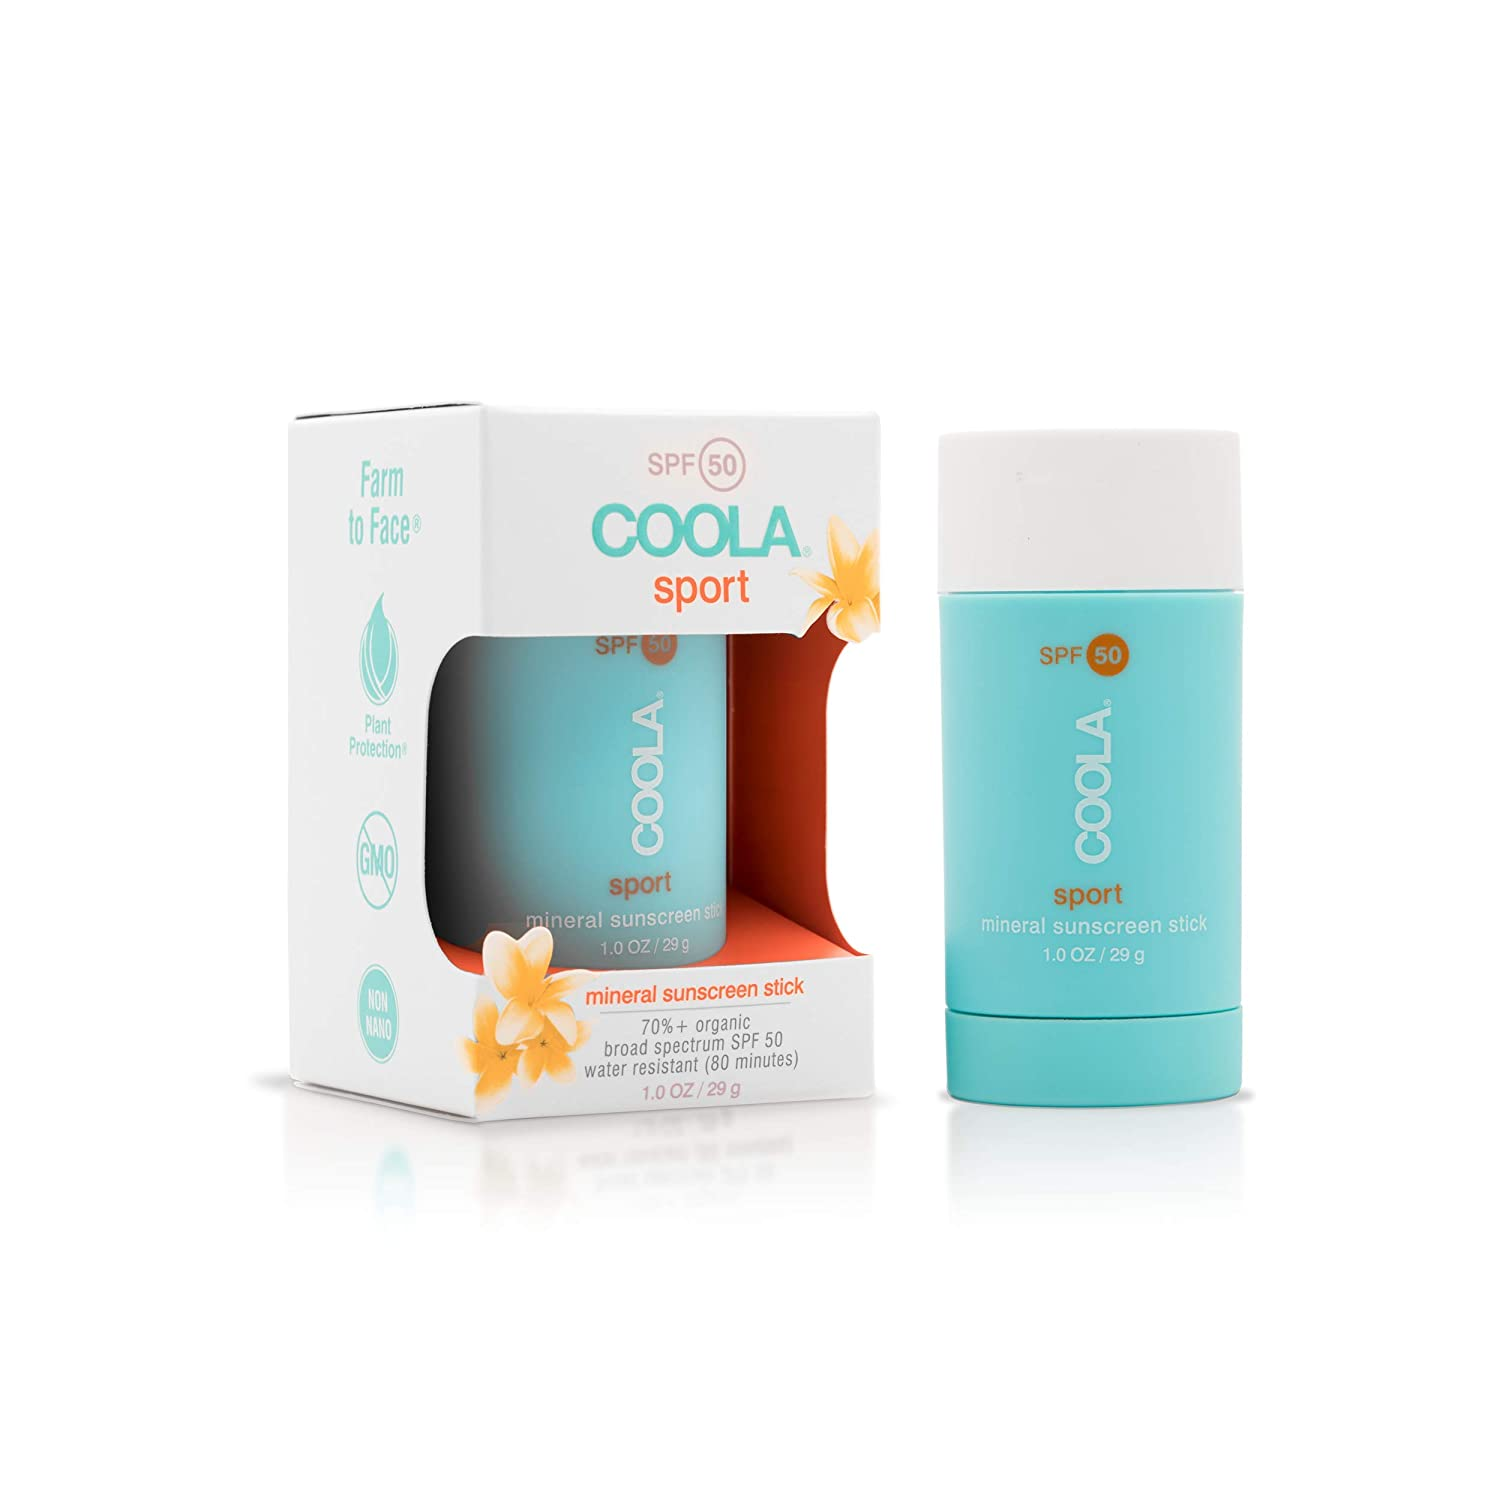 5b768d943 COOLA COOLA Mineral Sunscreen Stick SPF 50, 1 oz.: Amazon.ca: Luxury ...